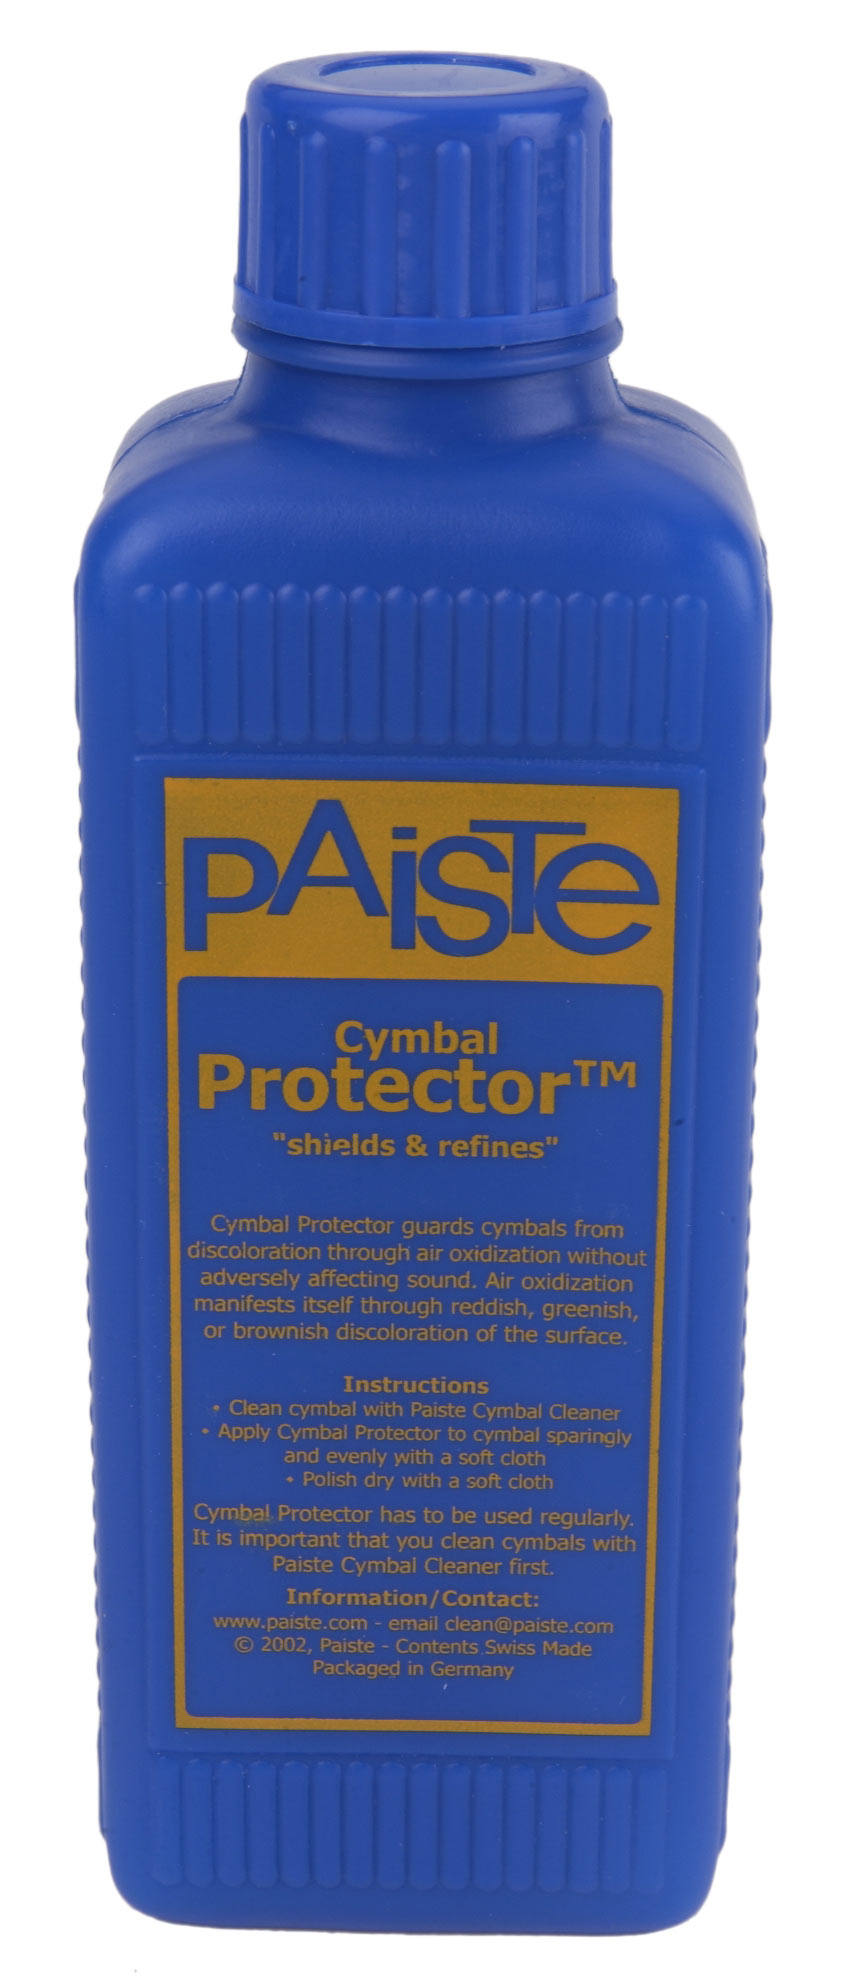 Paiste Cymbal Protector - 12 Pack